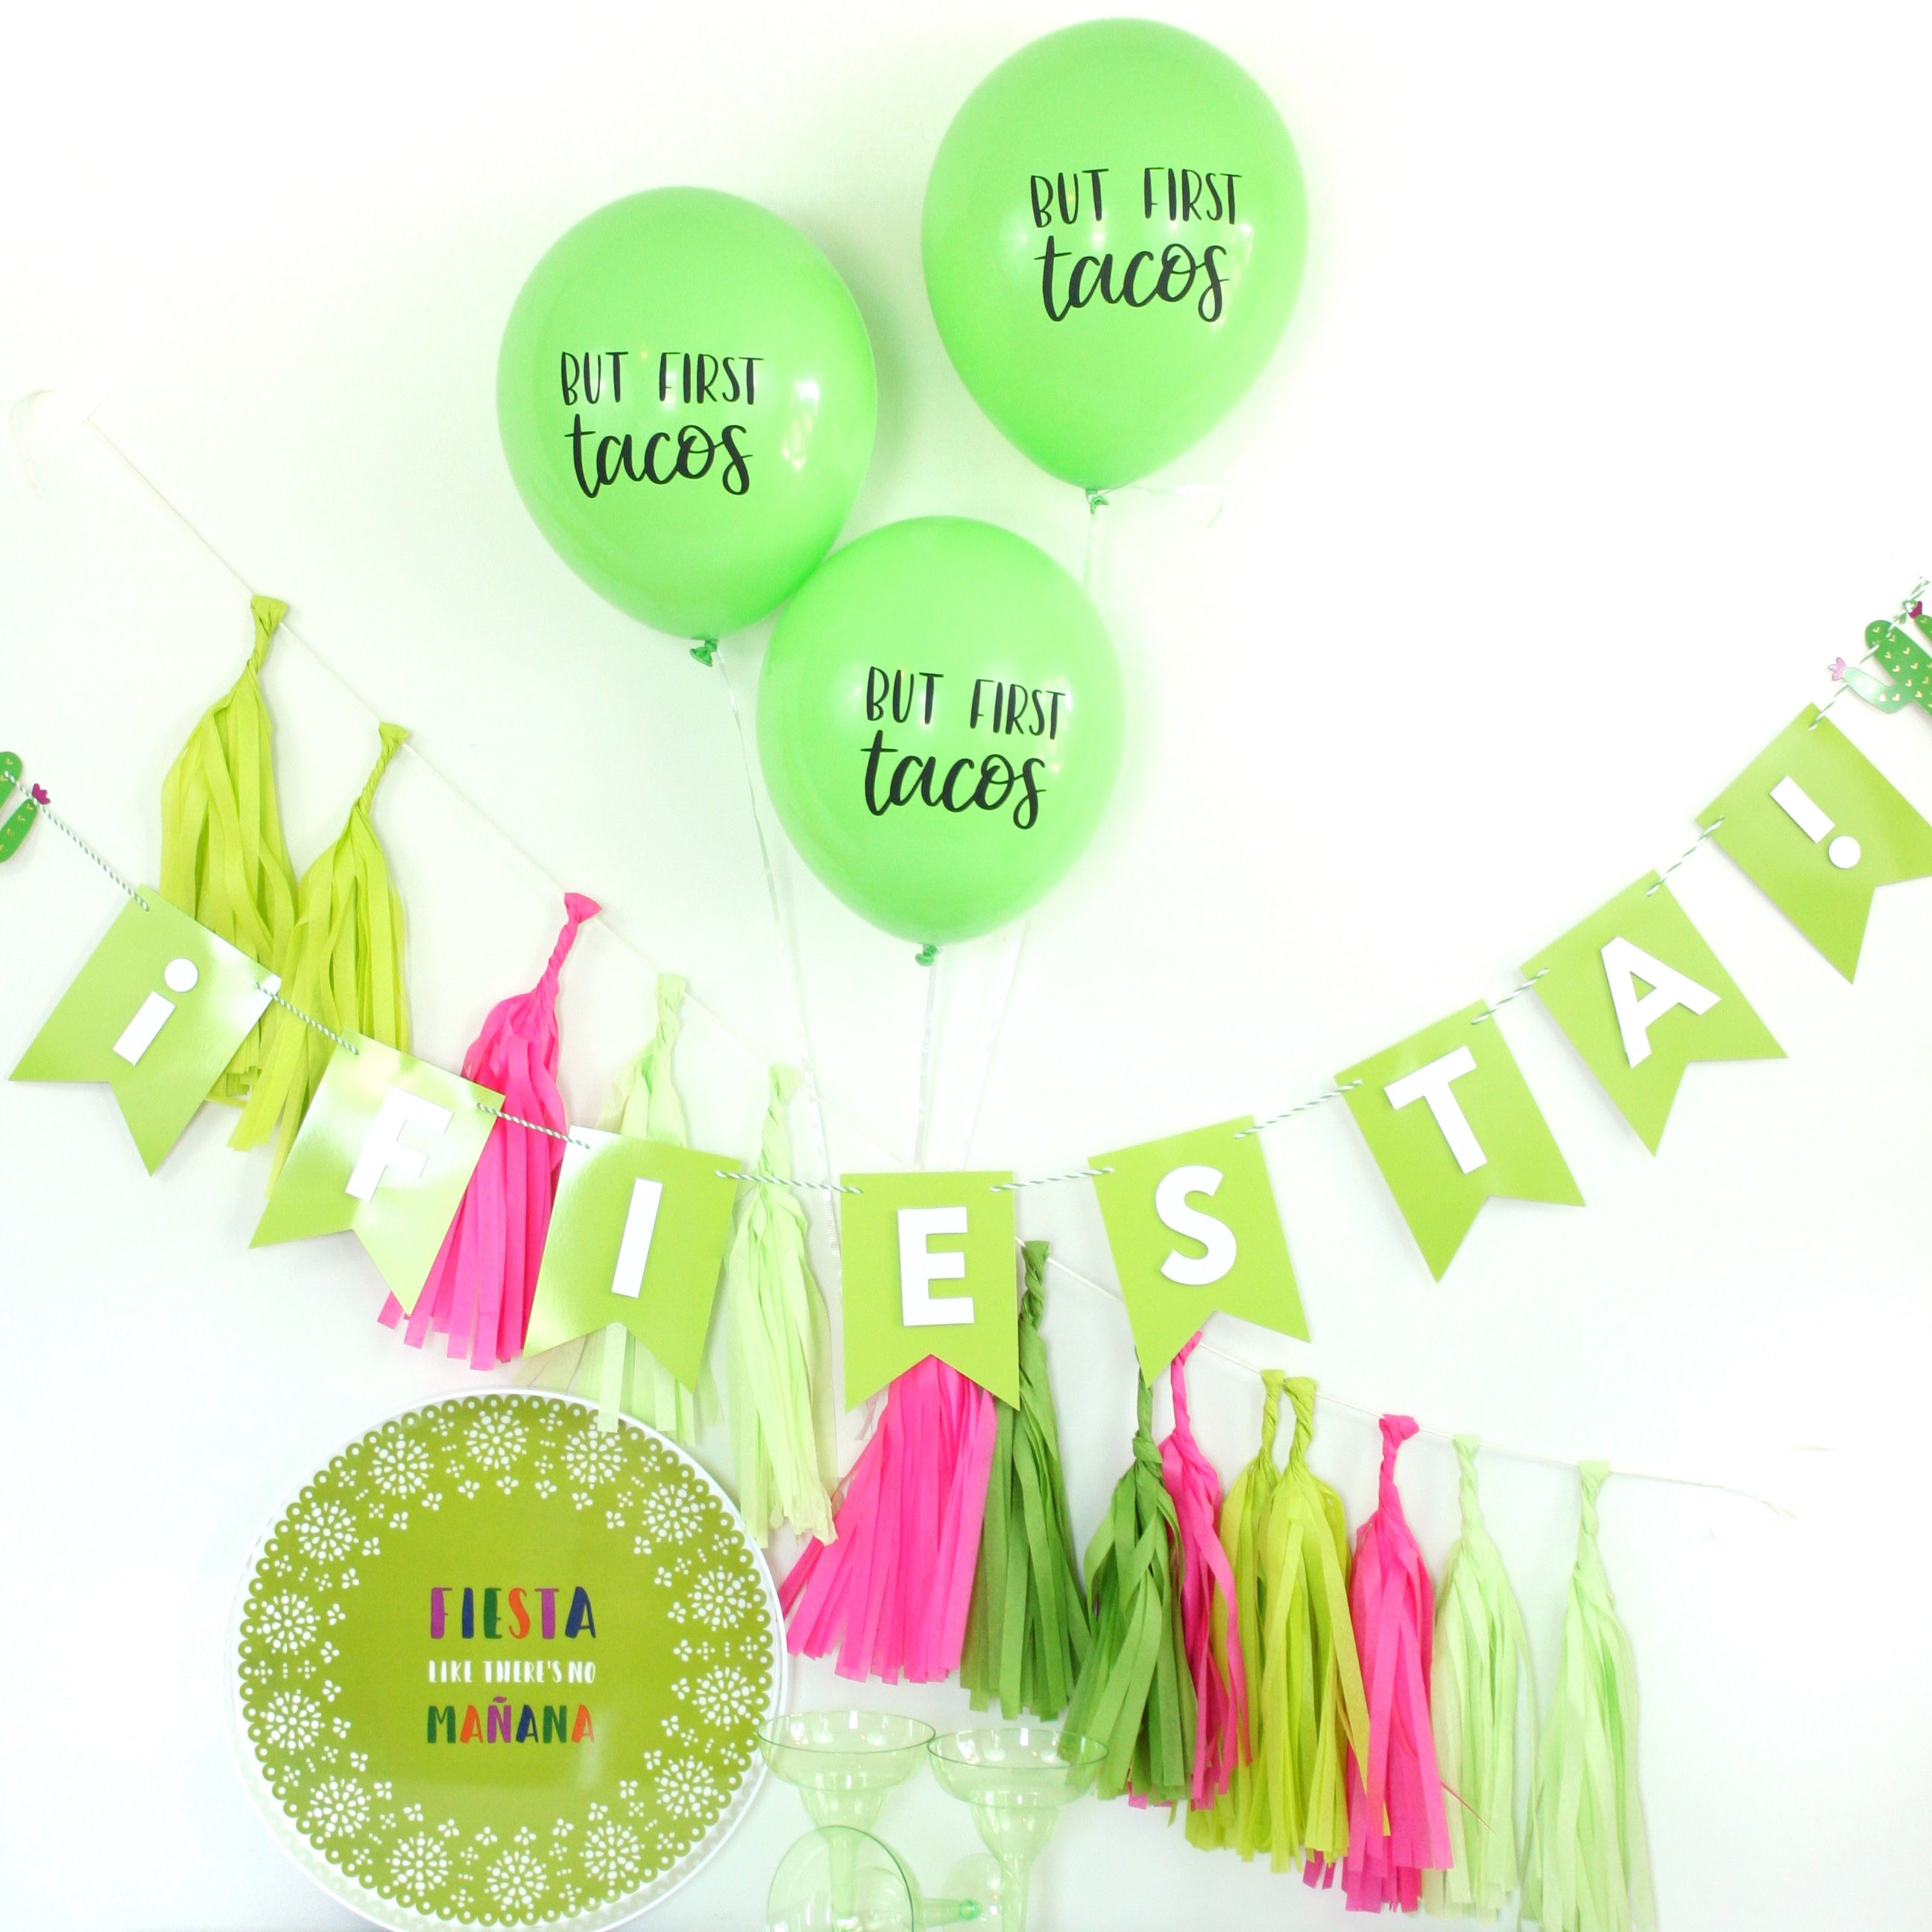 But First Tacos - Hand Lettered Balloons